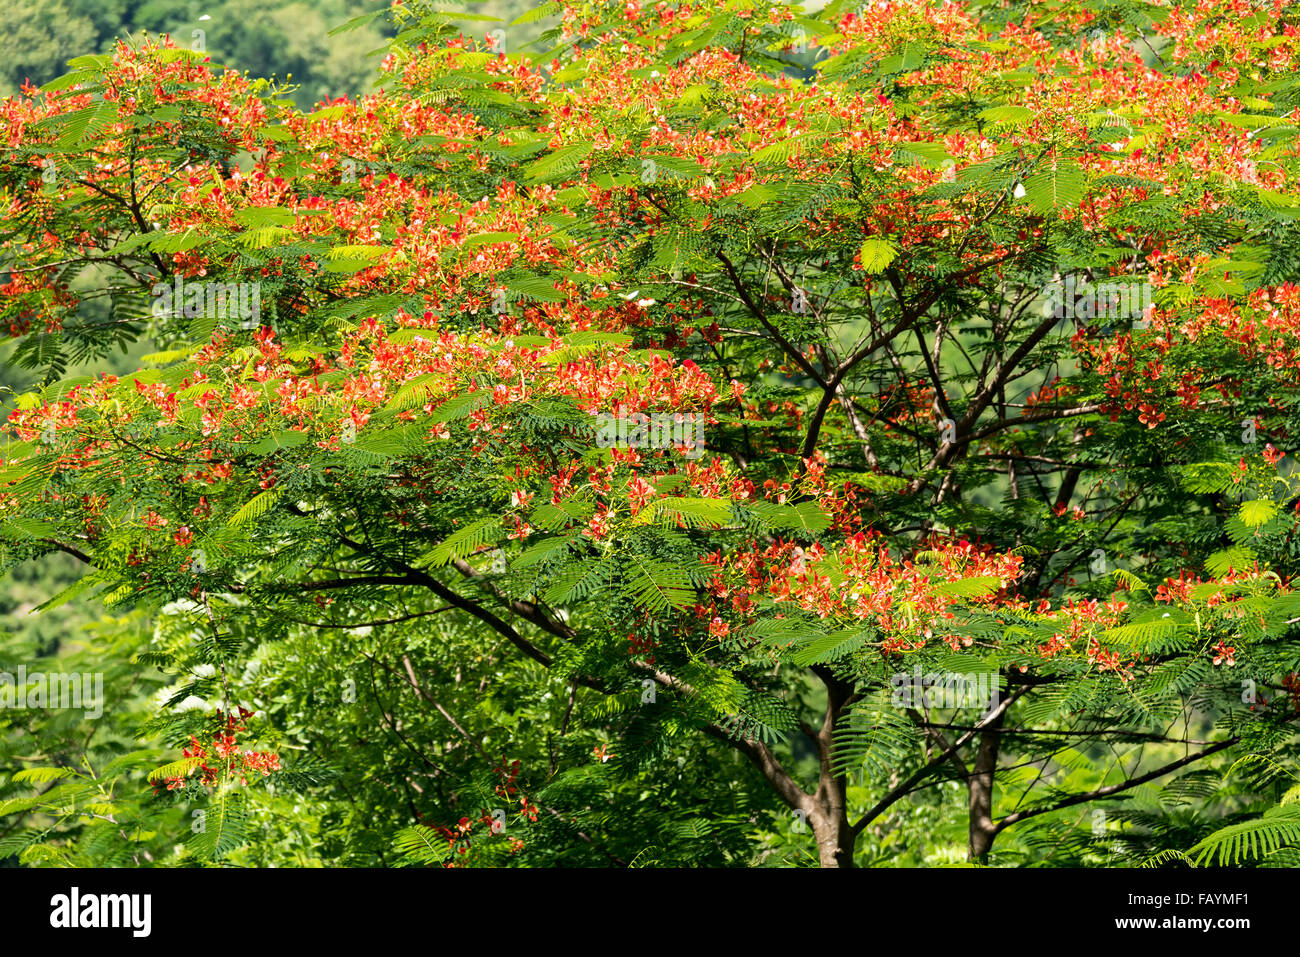 White butterflies feeding on the red flowers of Royal Poinciana tree, Indonesia - Stock Image